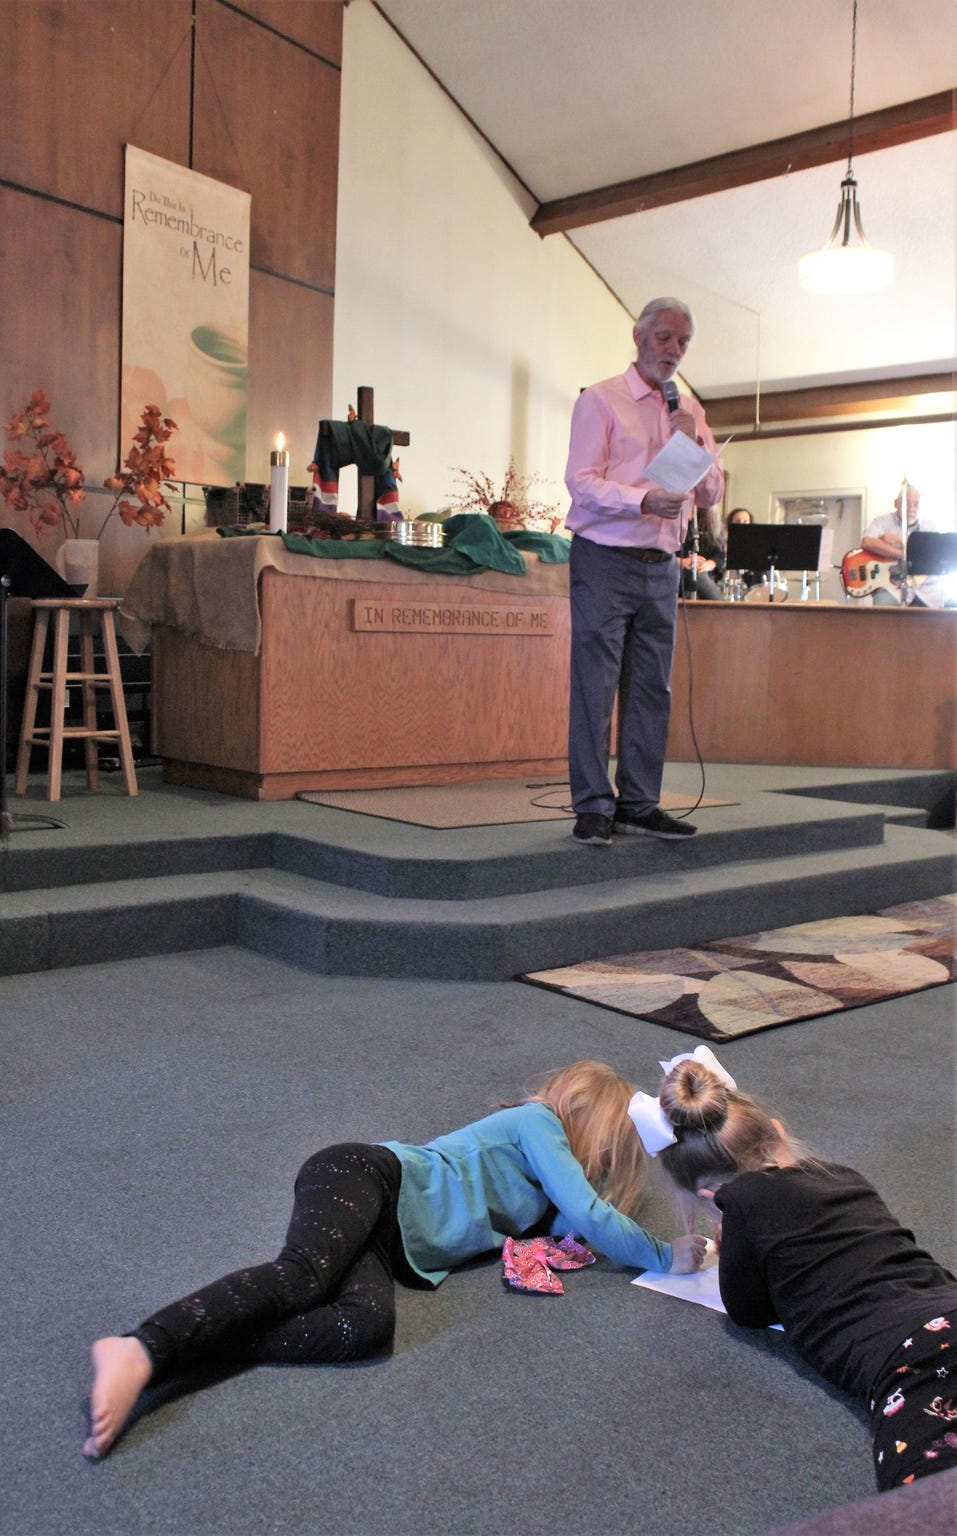 There is no rule at Wylie Christian Church that you have to stay in your seat. Youngsters color and roll around almost at the feet of the preacher, Doug Roysden.